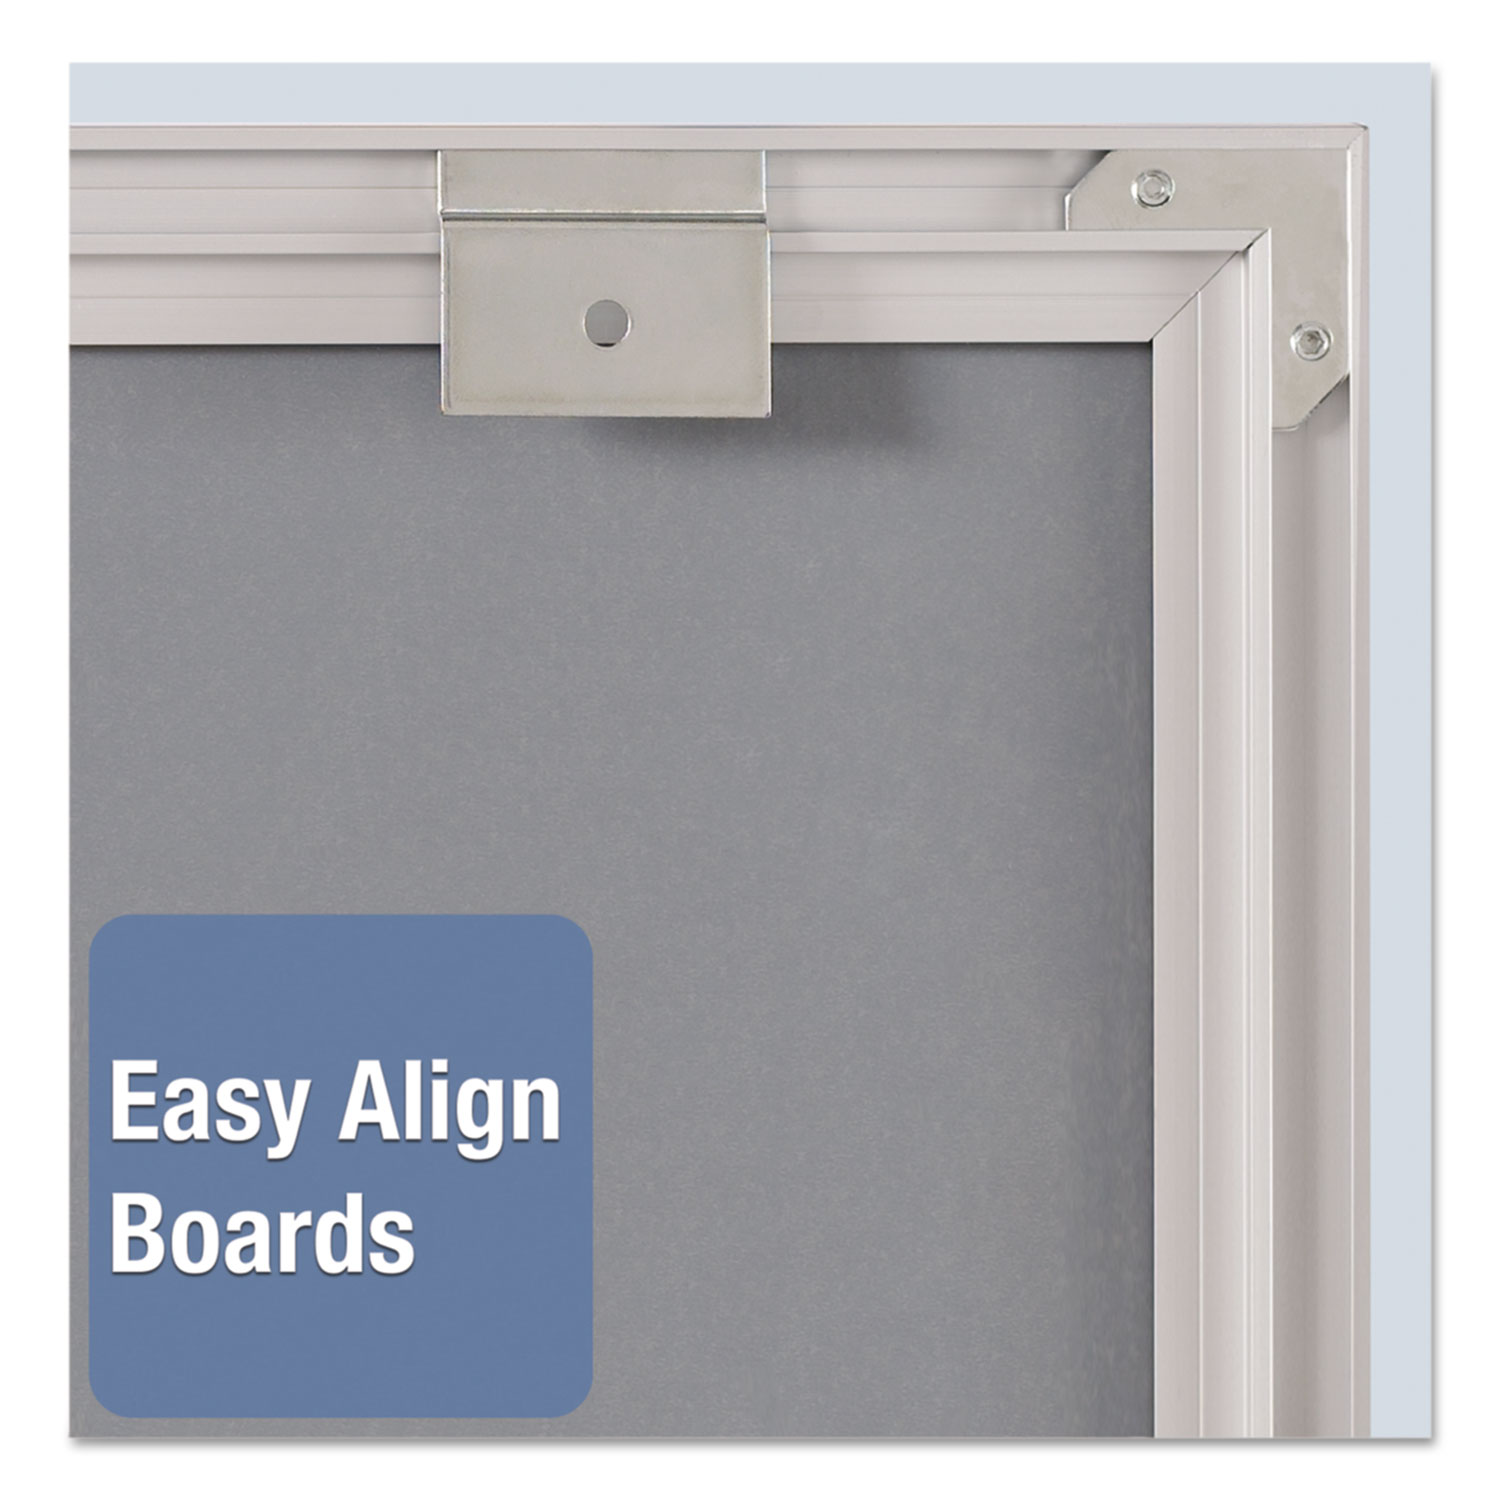 Picture of Matrix Magnetic Boards, Painted Steel, 16 x 16, White, Aluminum Frame